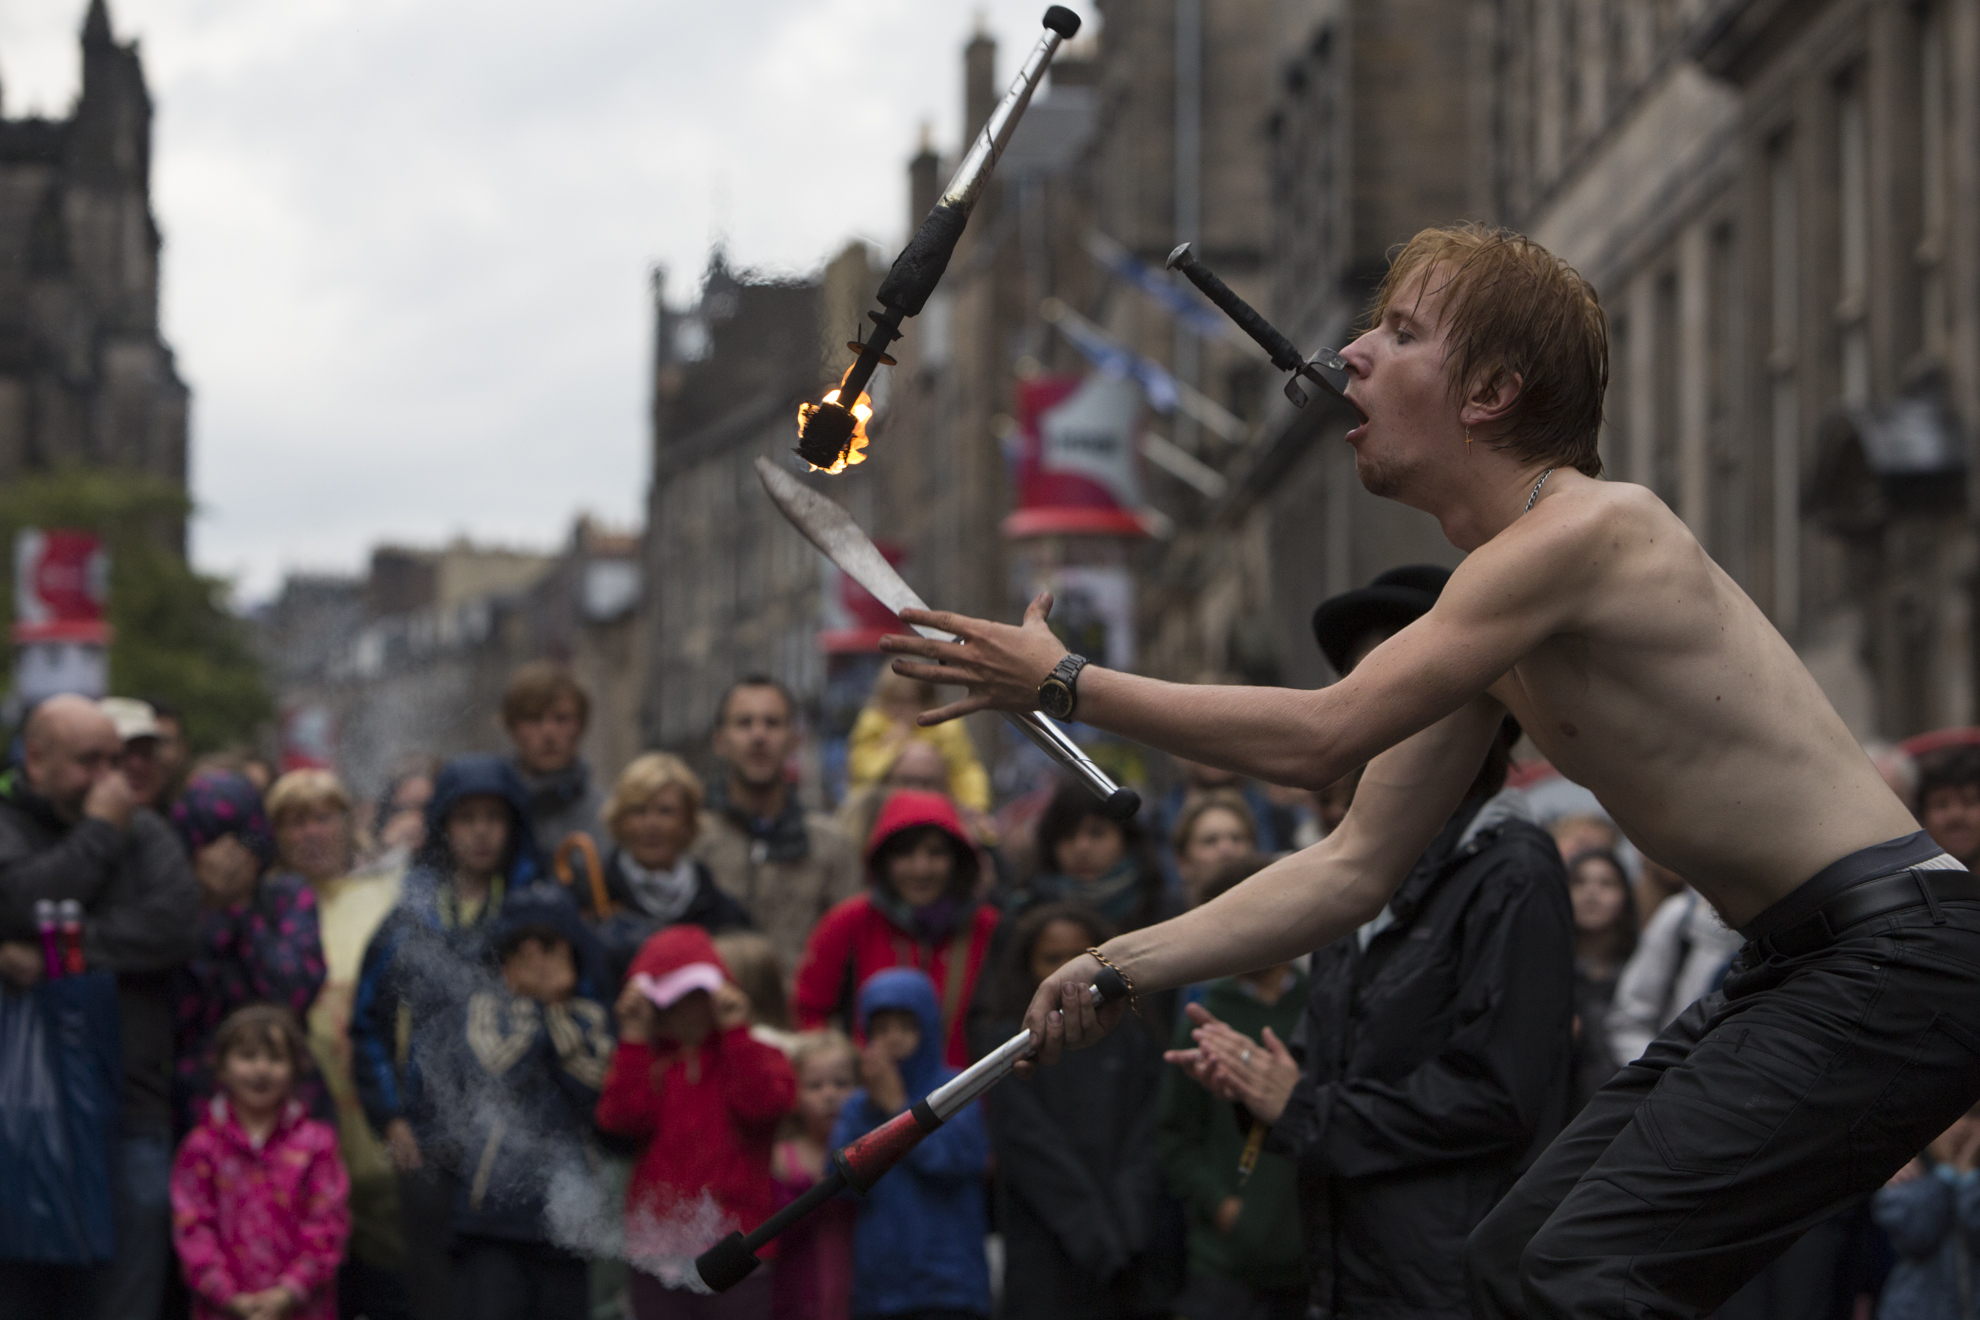 Tommy Everson performs in front of a crowd in the rain during the 2014 Edinburgh Festival of the Fringe in Edinburgh, Scotland.